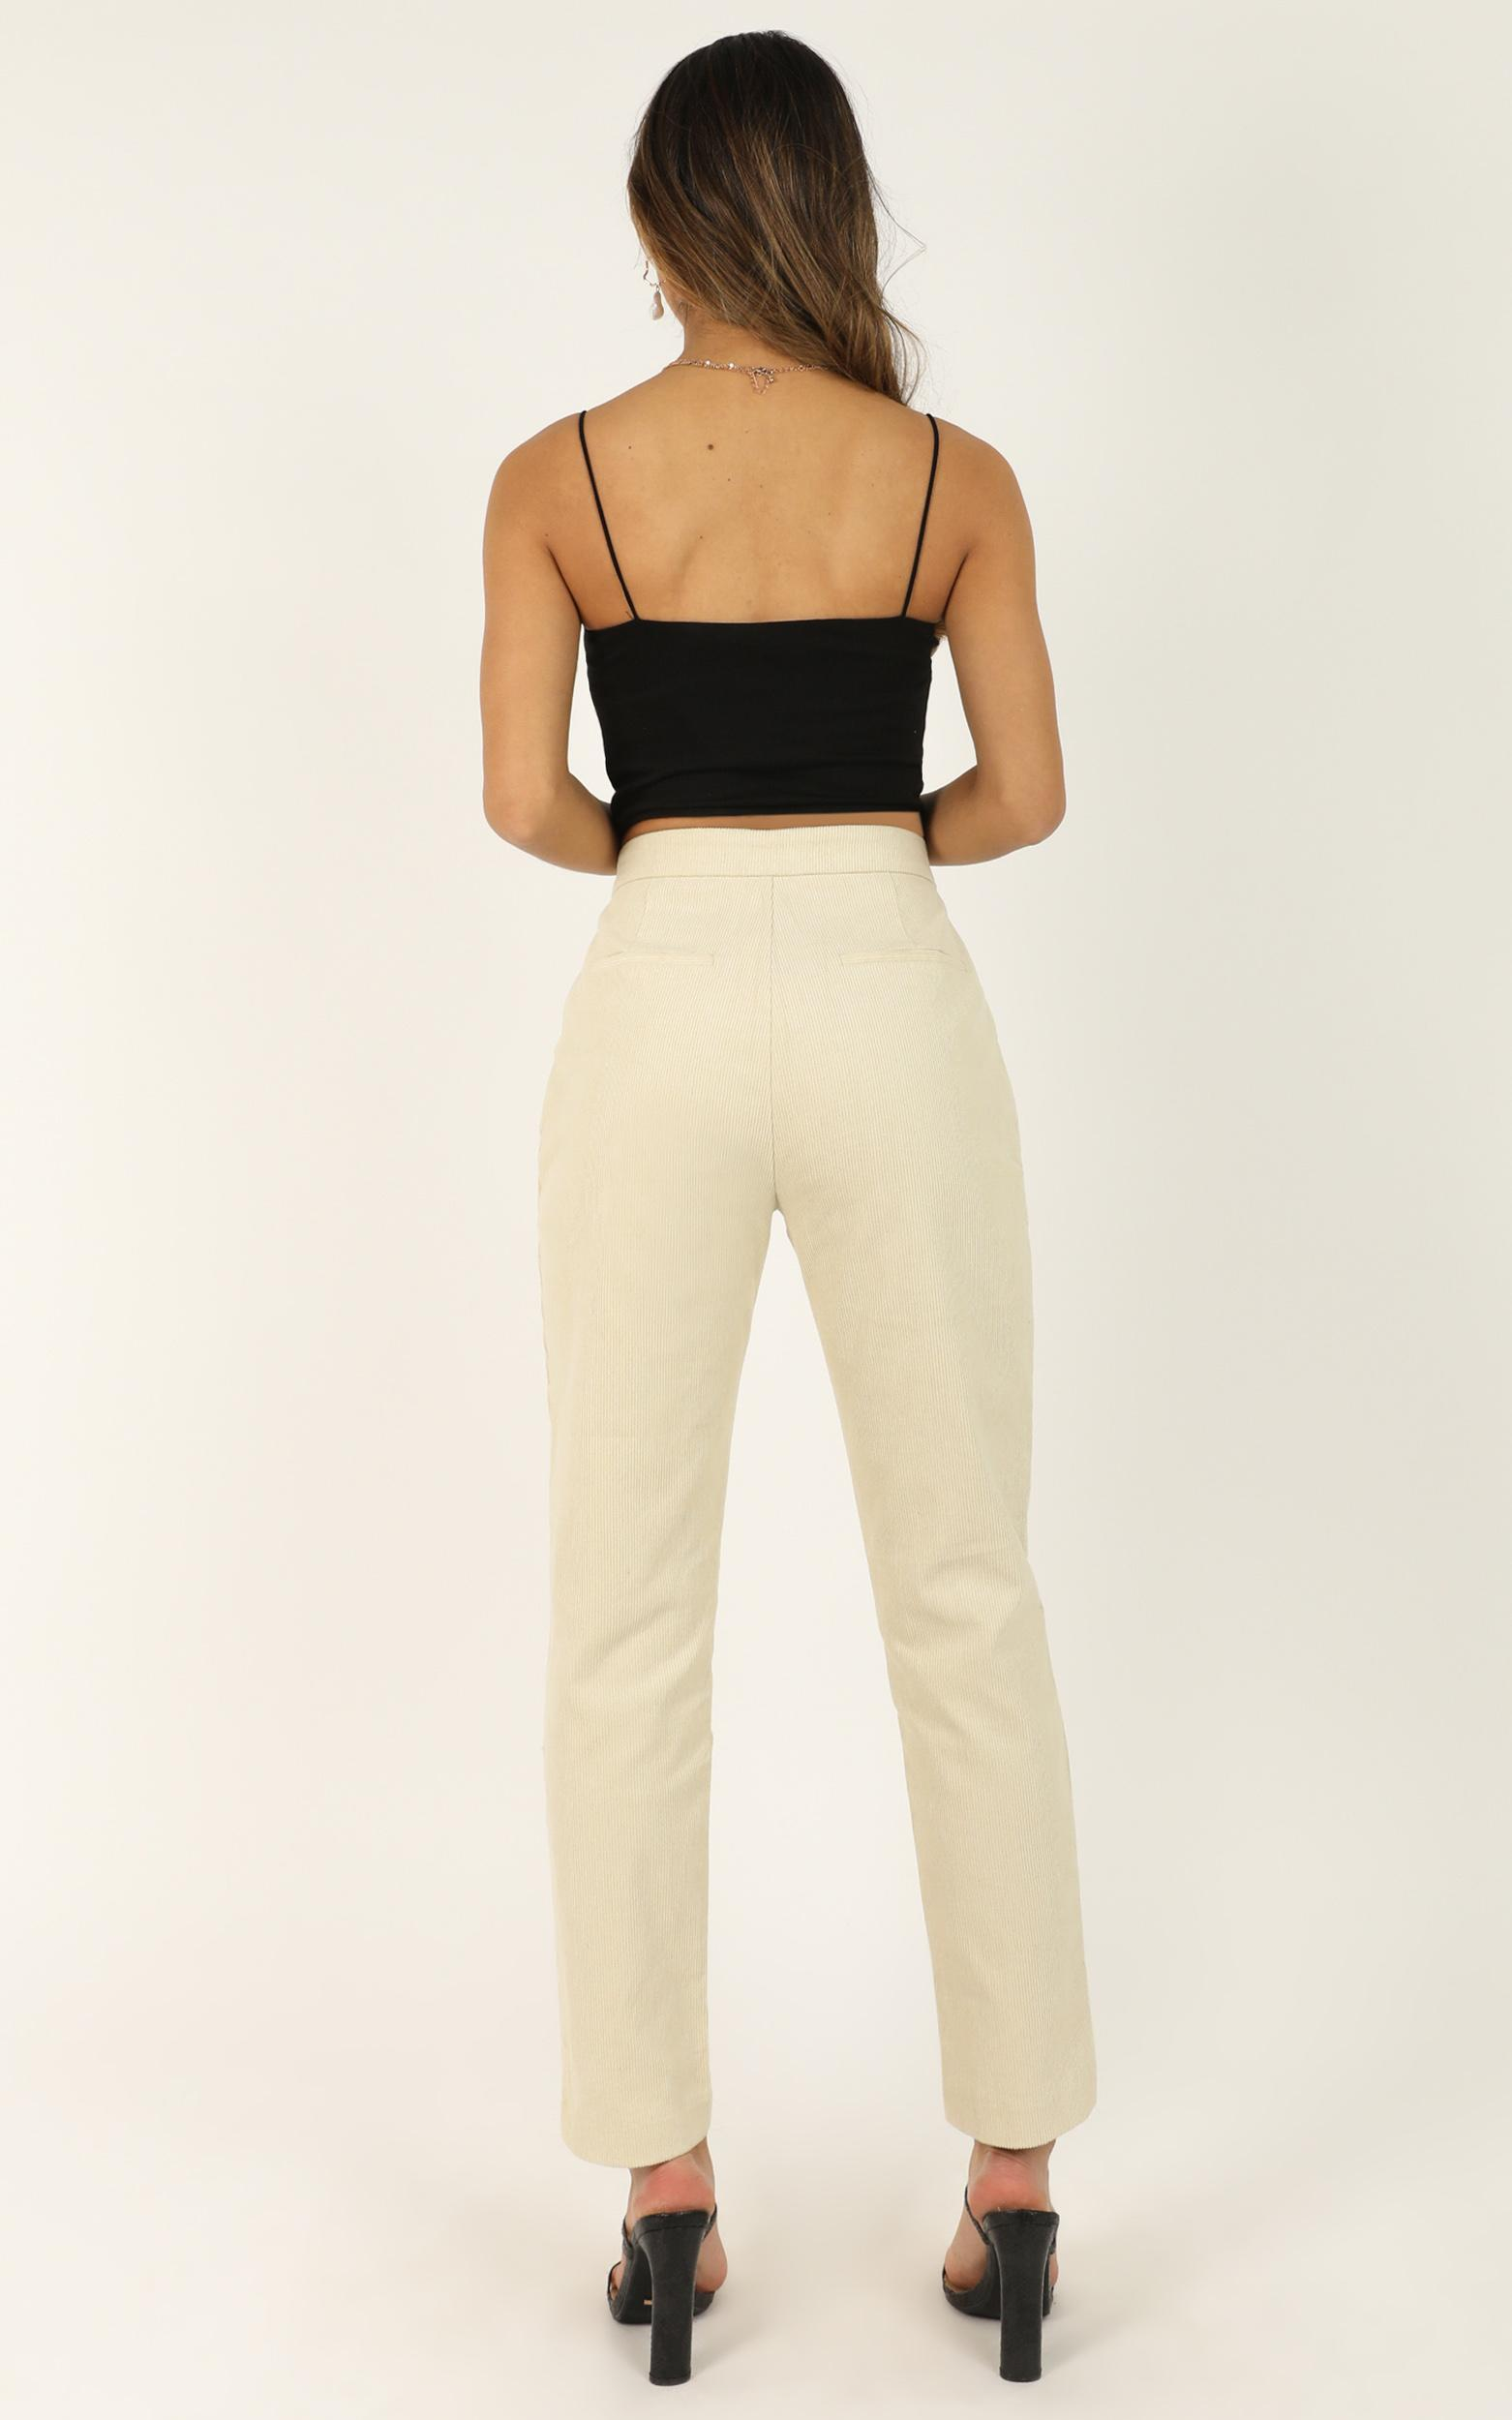 Never Be Alone Pants in cream cord - 20 (XXXXL), Cream, hi-res image number null